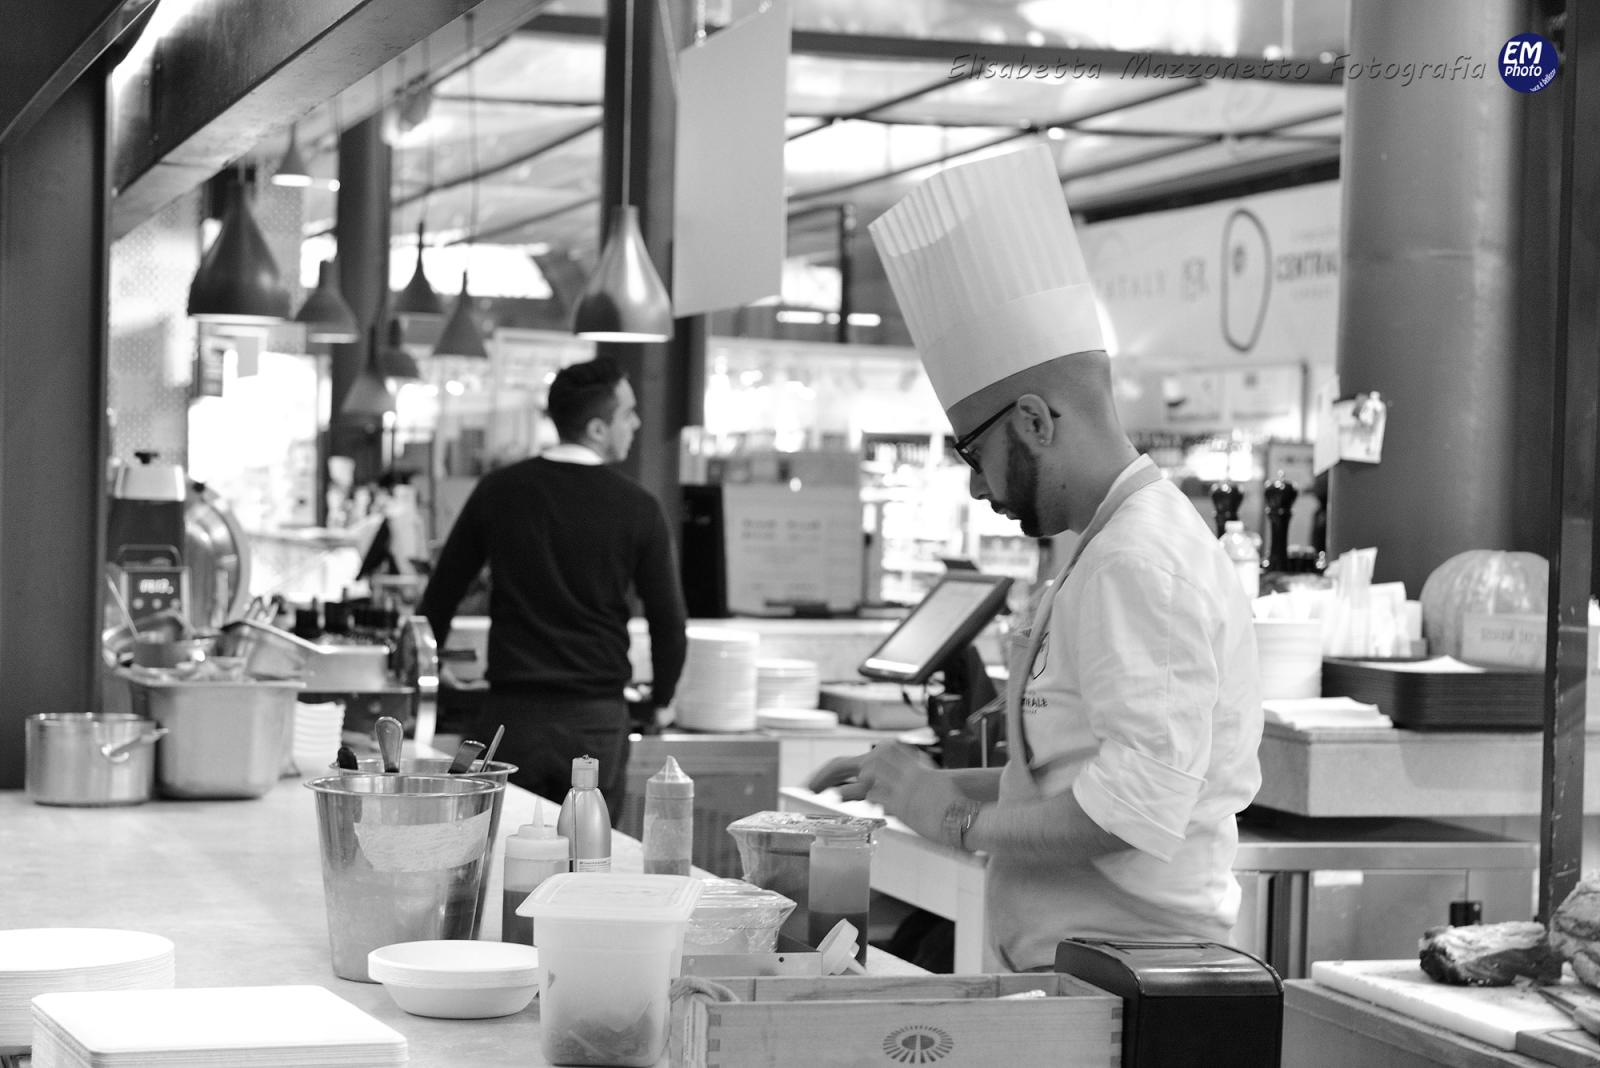 Mcf mercato centrale firenze shootfood a food photography project - Scuola di cucina firenze ...